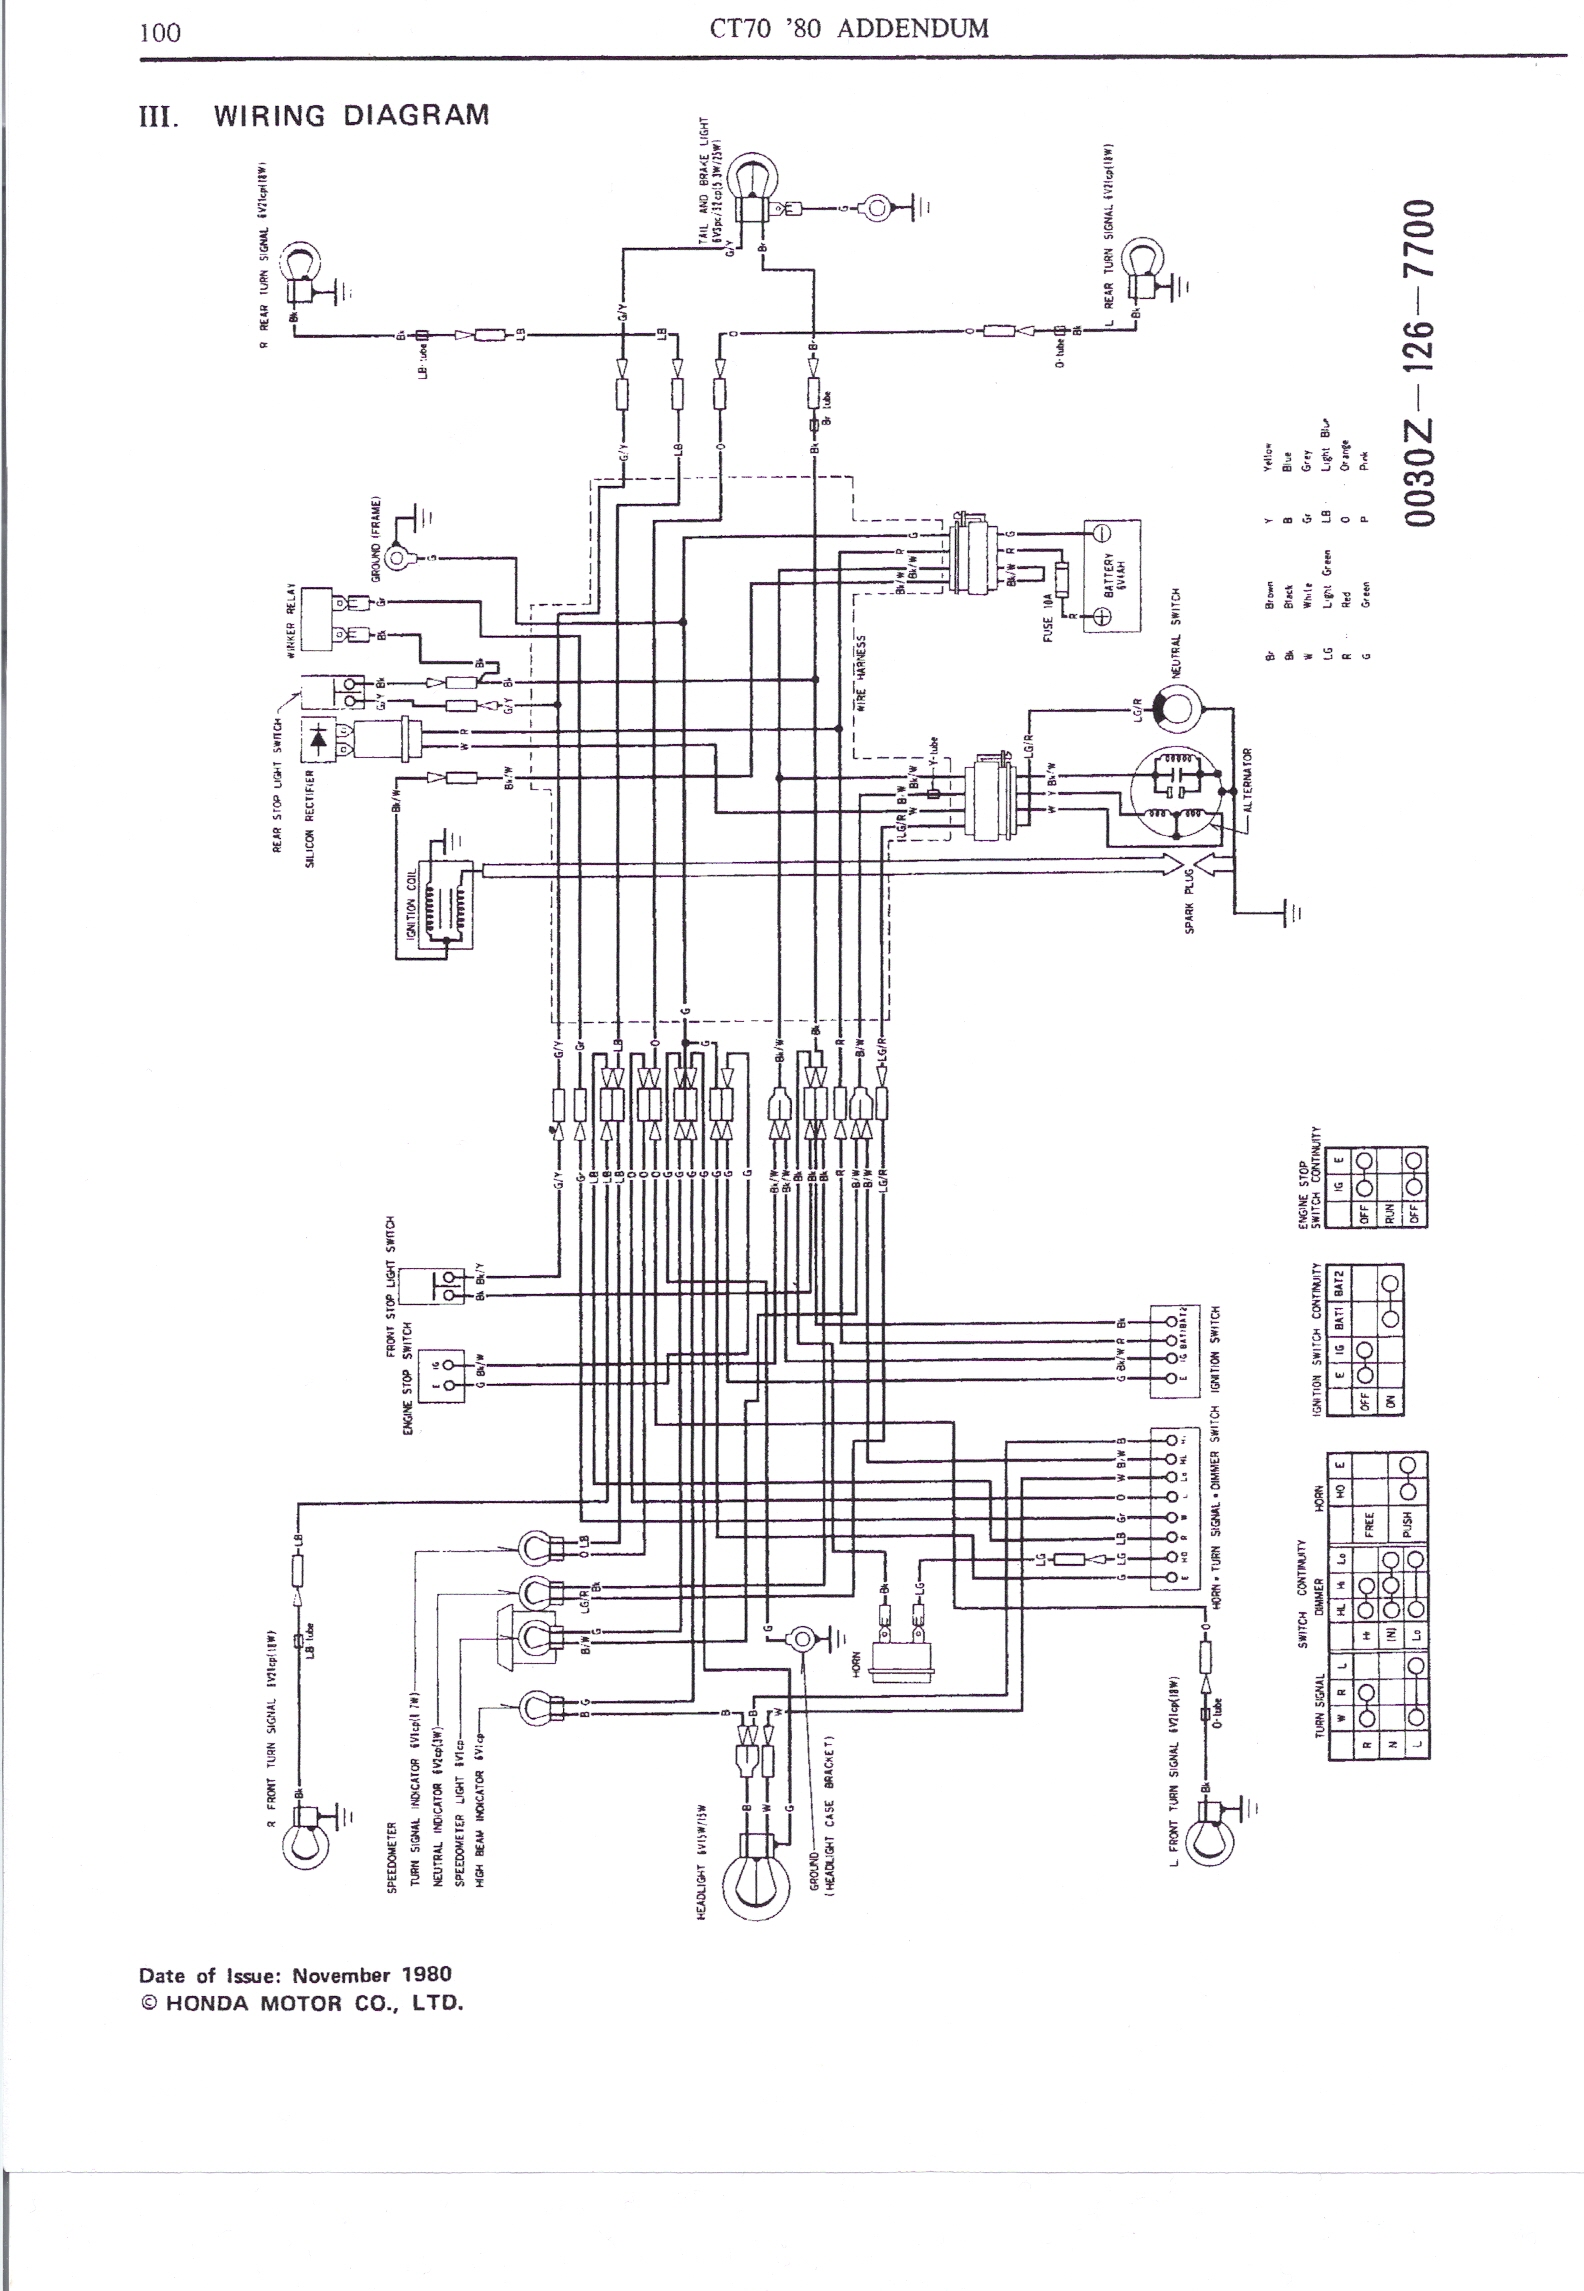 wanted wiring diagram for a 1982 ct70